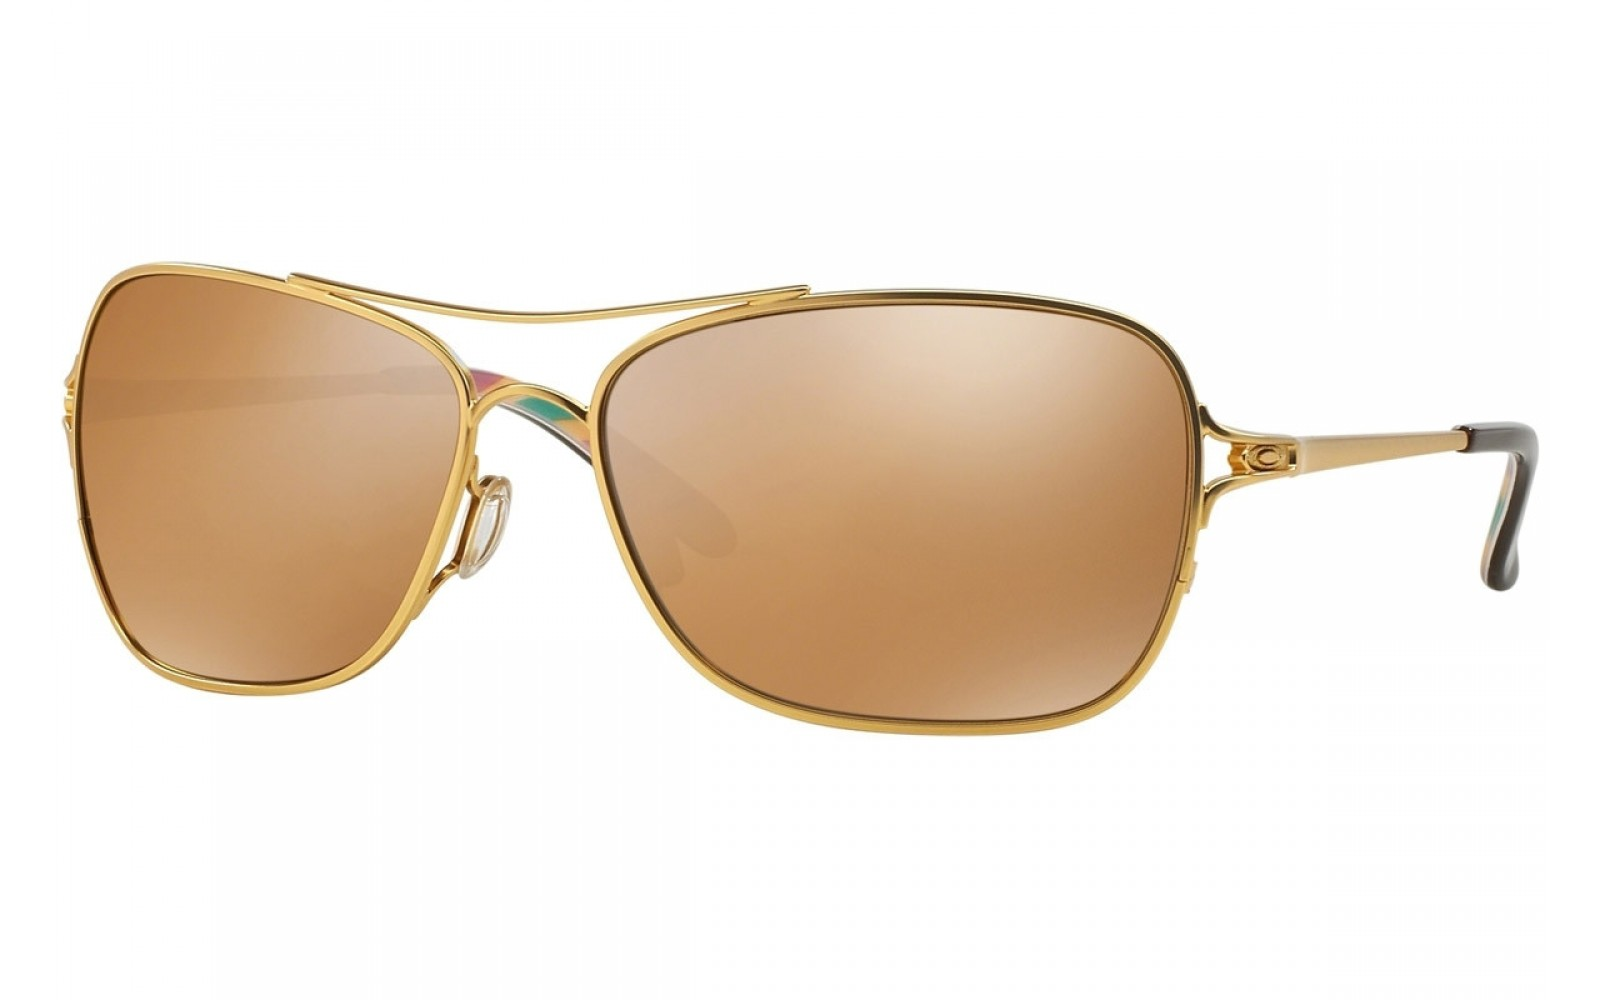 Oakley Conquest - Satin Gold/Iris / Tungsten Iridium - OO4101-03 Zonnebril